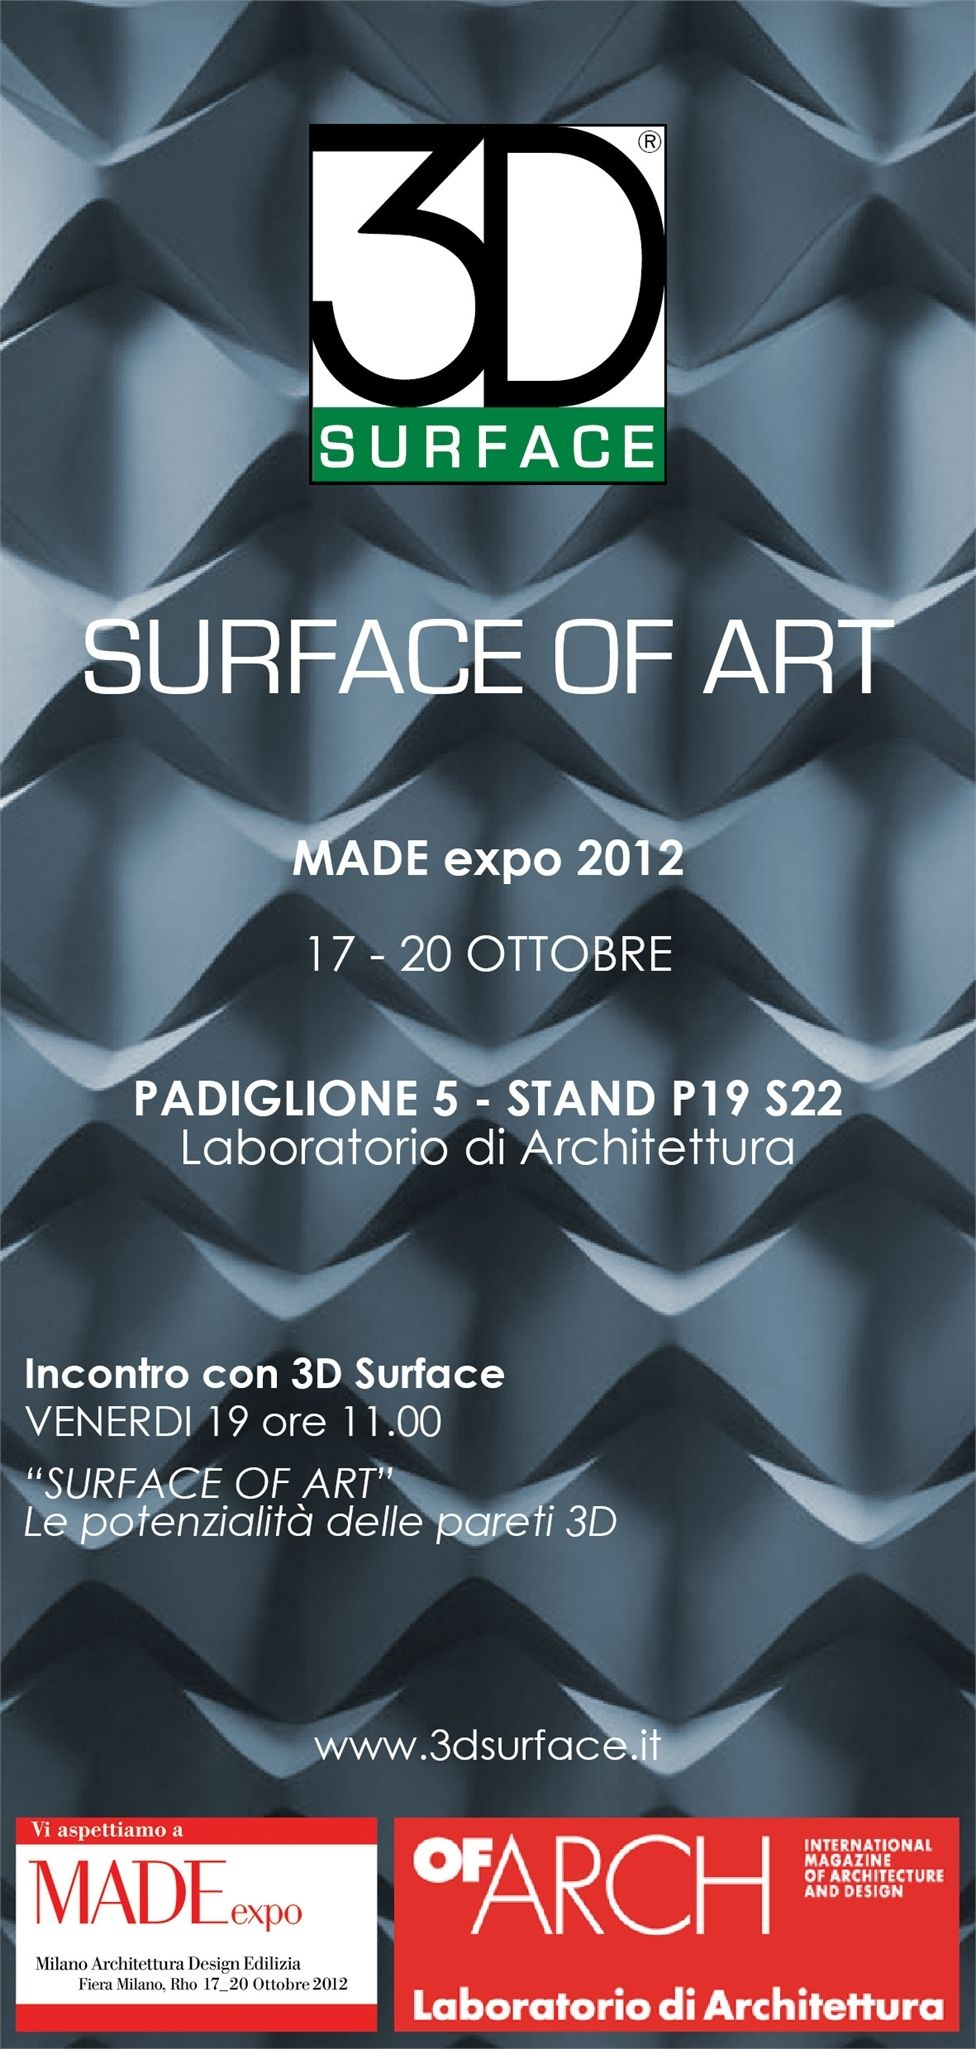 3D Surface a Made Expo presenta le suggestive pareti tridimensionali